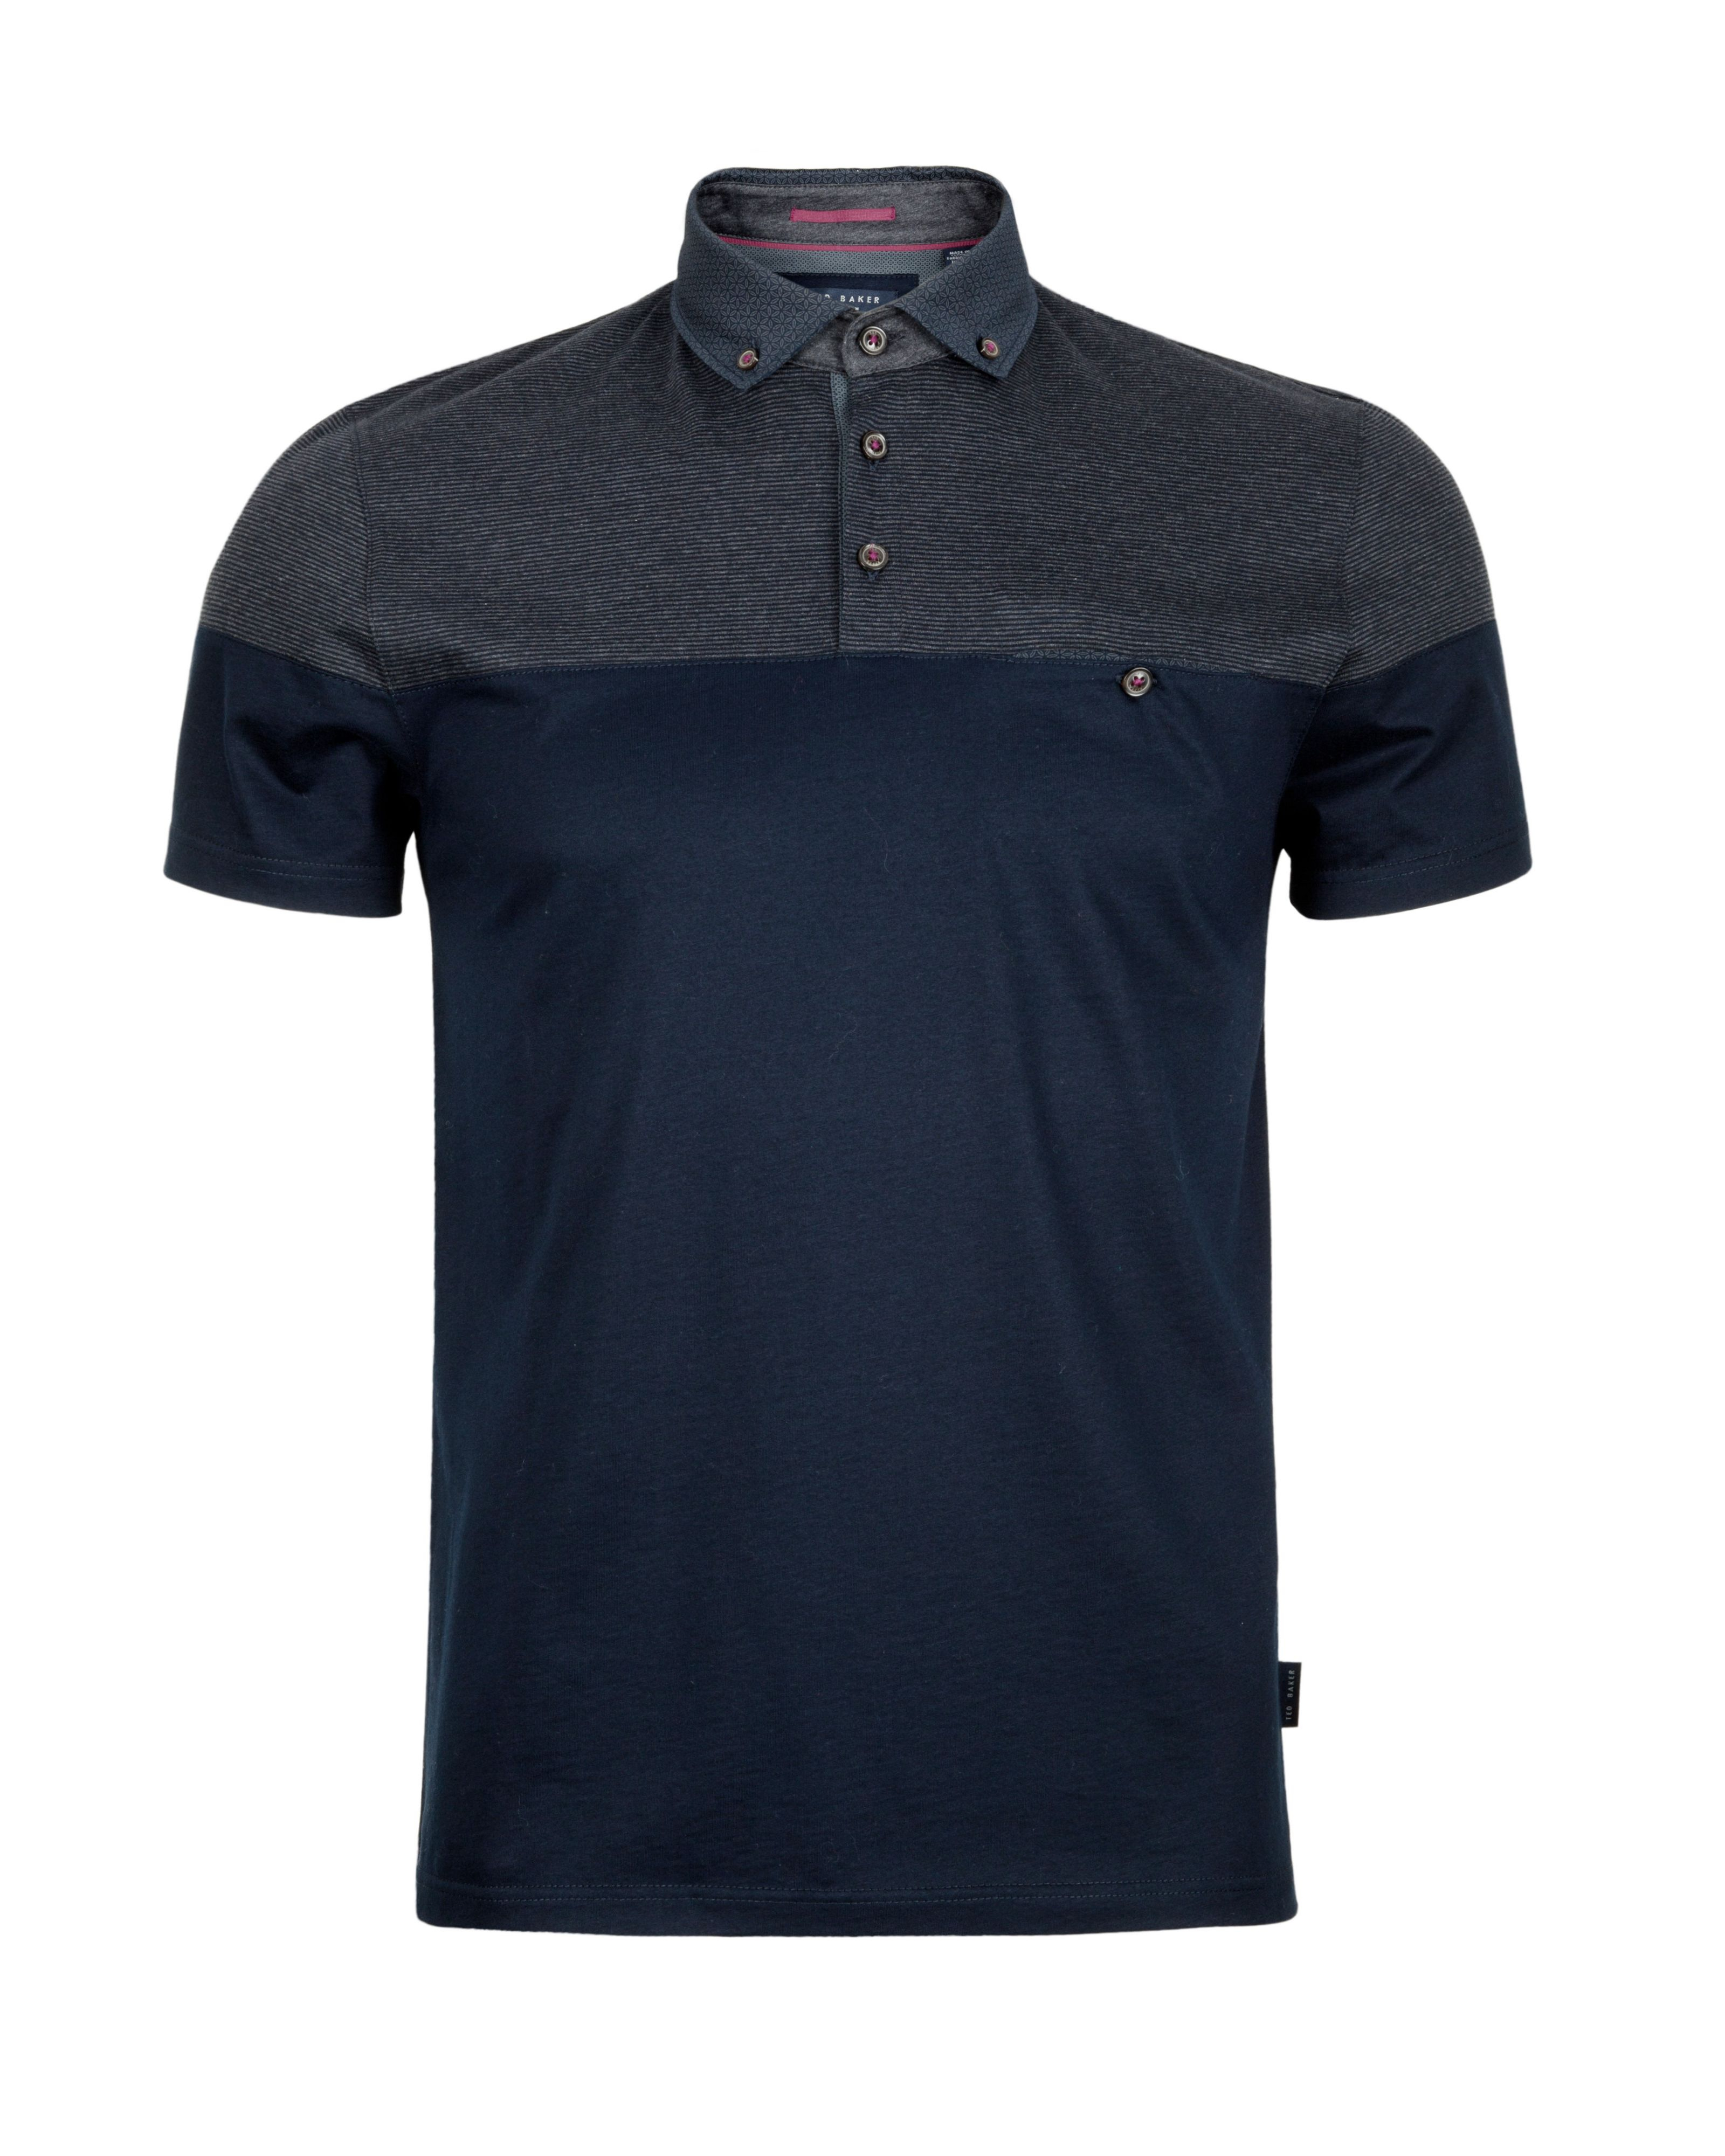 Ted baker blue wookpol panel printed polo shirt for men for Ted baker blue shirt